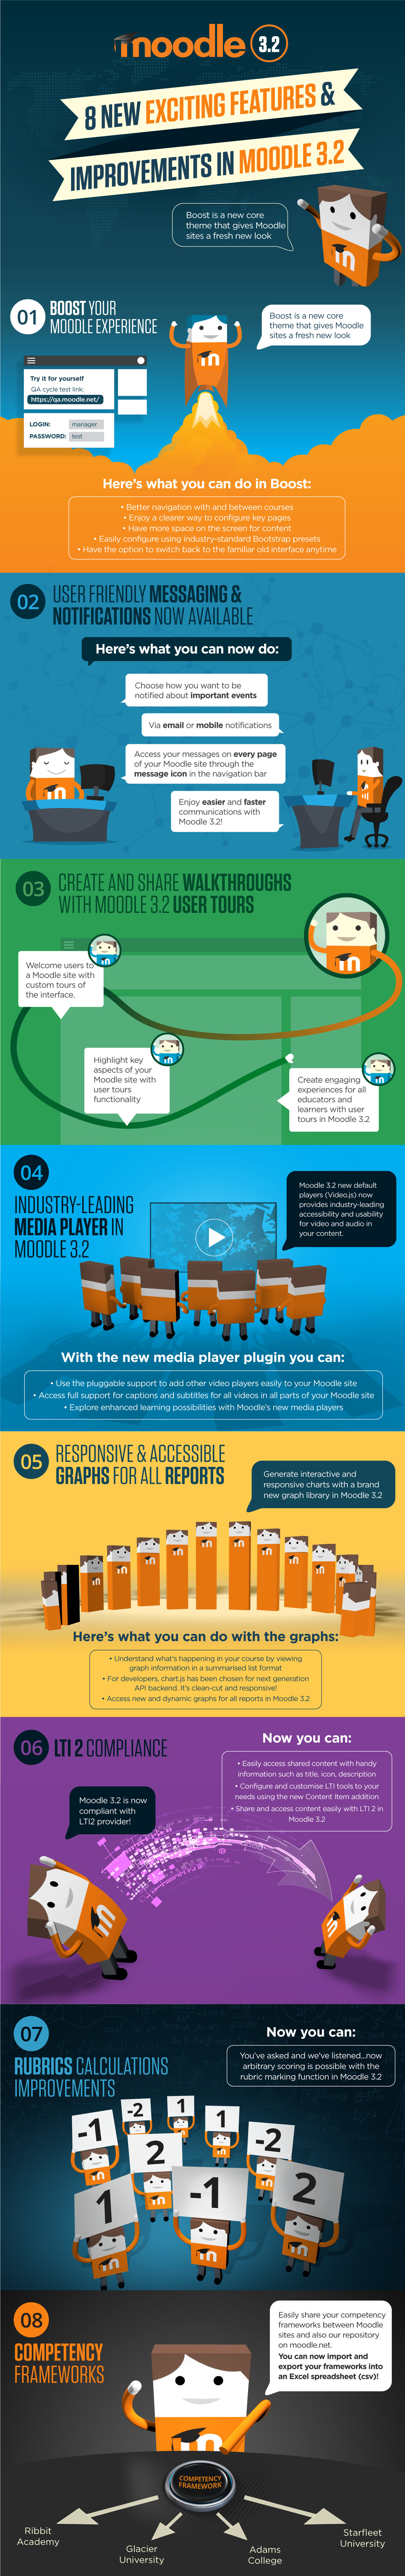 moodle3-2-infographic